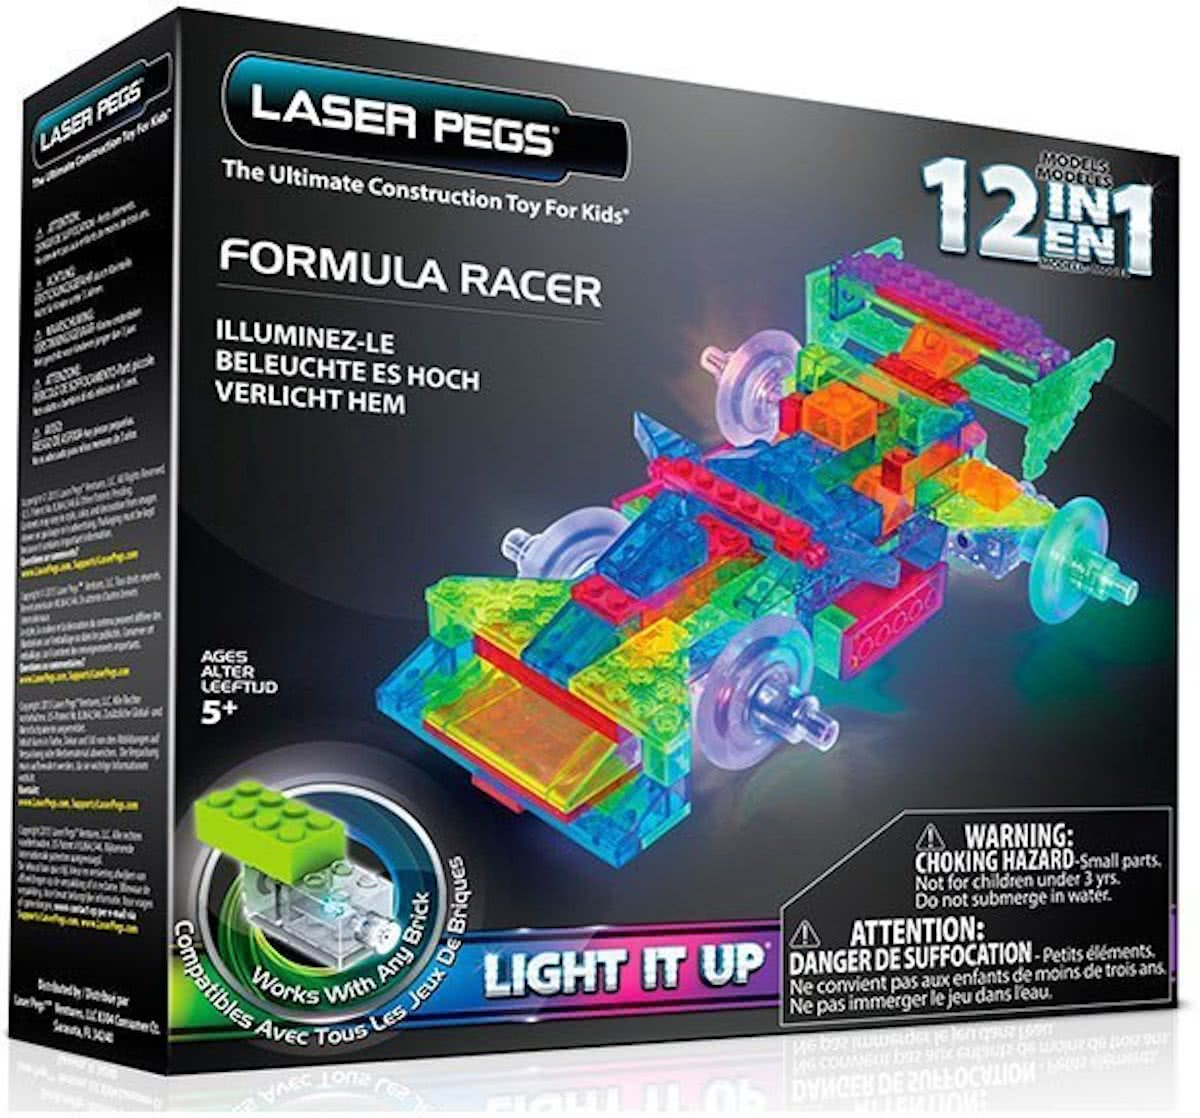 LaserPegs 12 in 1 Formula Racer